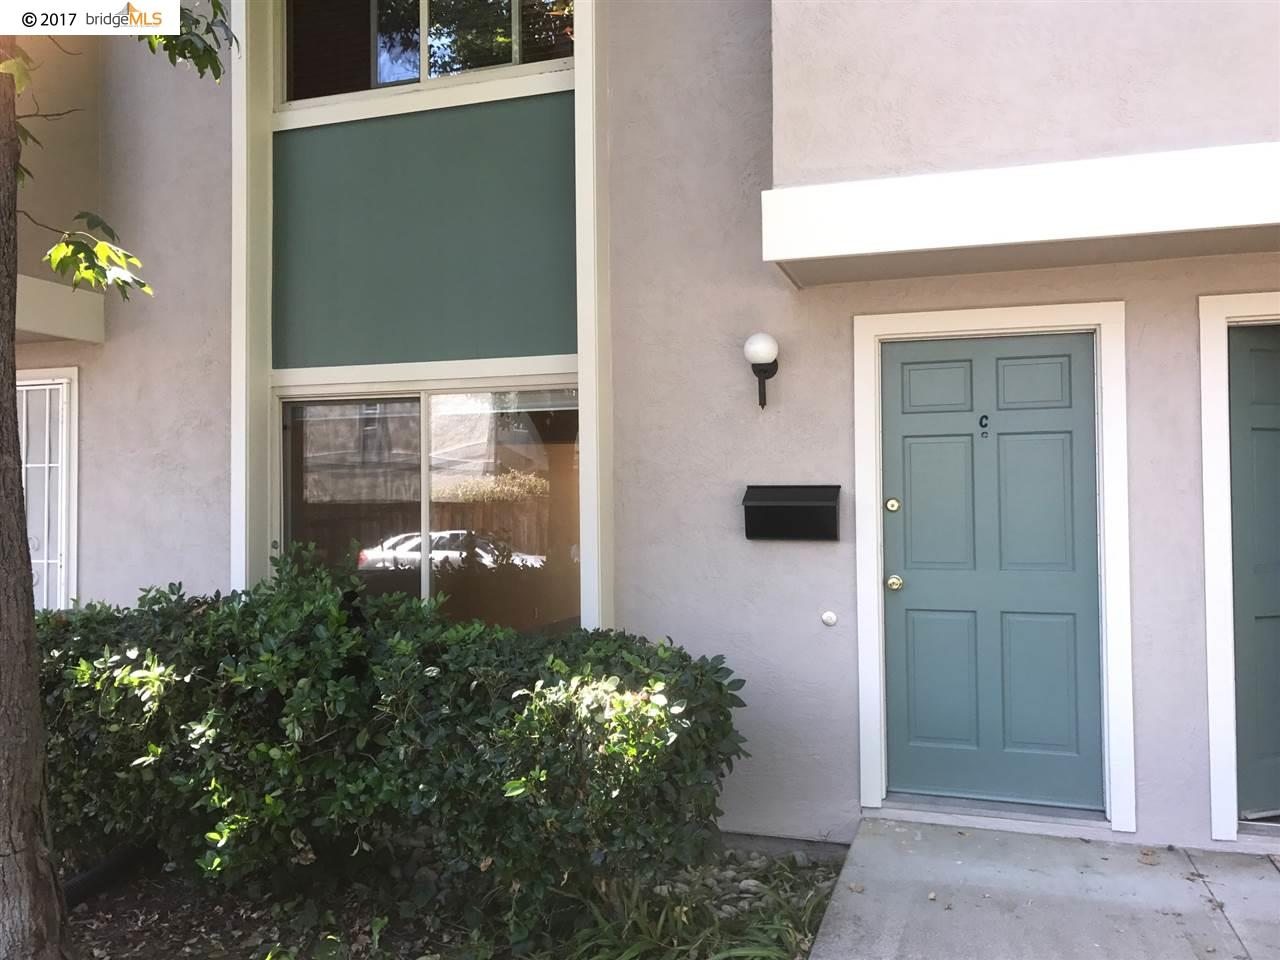 Townhouse for Sale at 1221 Pine Creek Way 1221 Pine Creek Way Concord, California 94520 United States